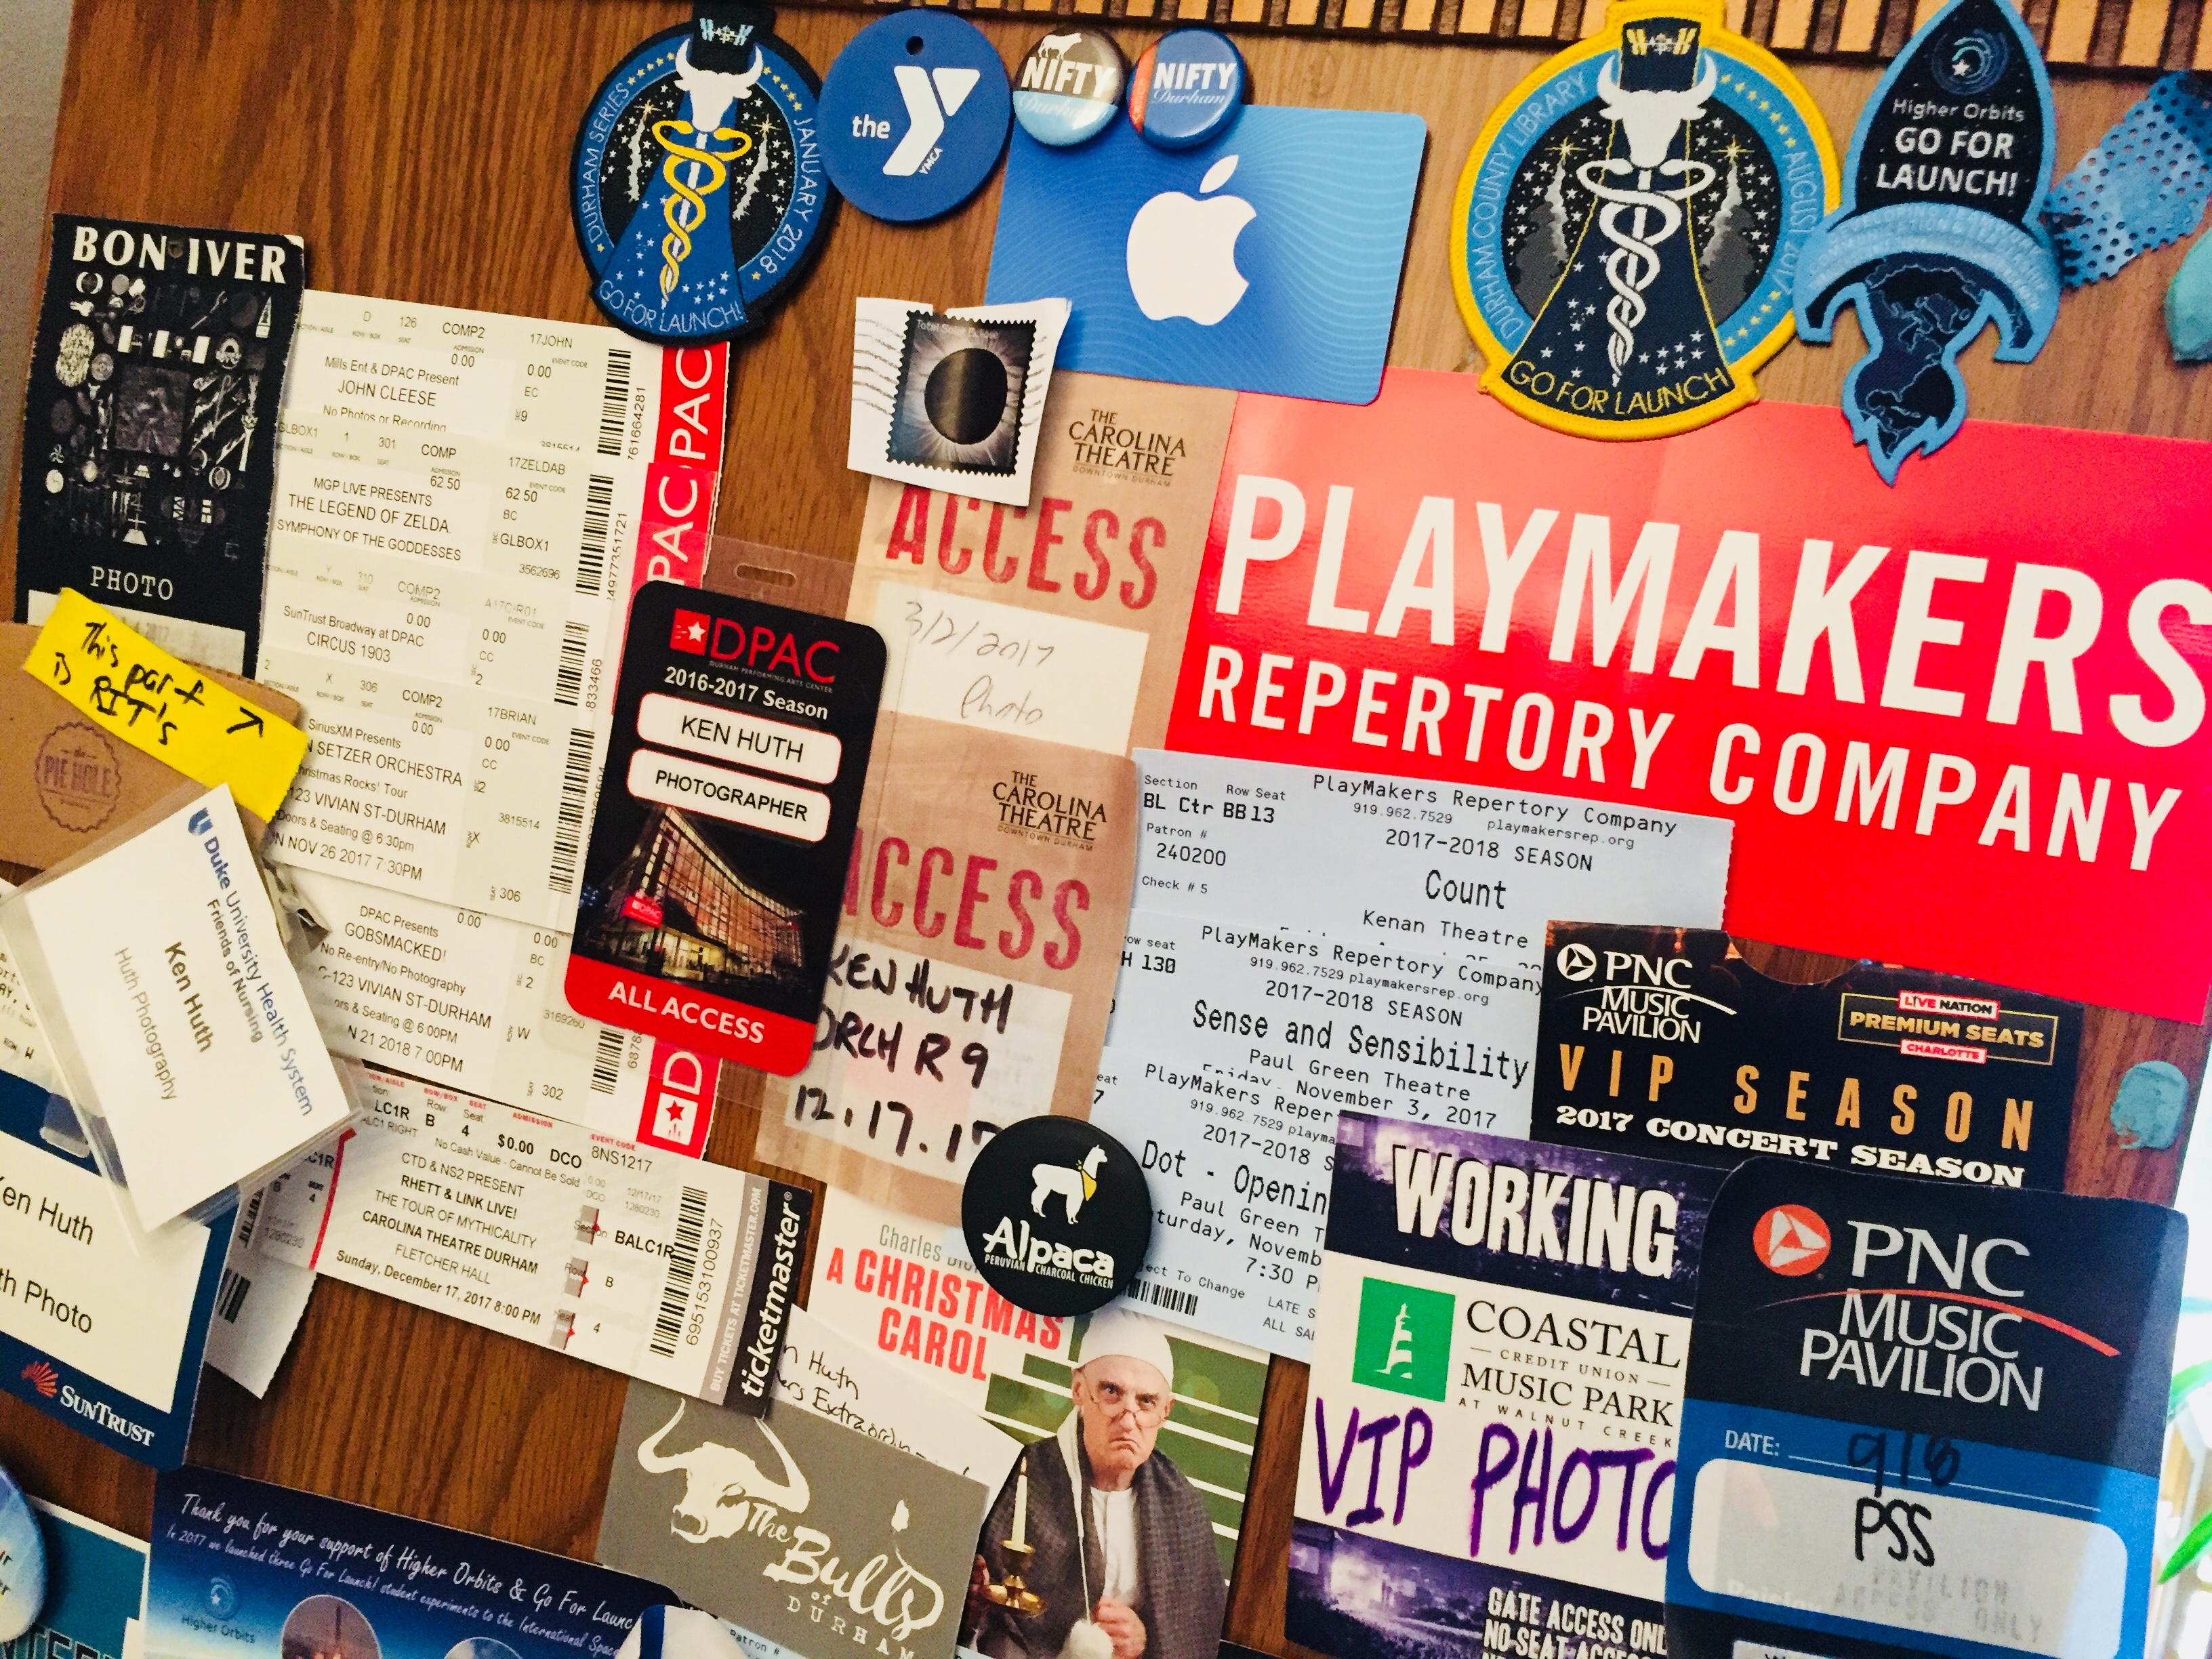 Image of PlayMakers bumper sticker and other memorabilia